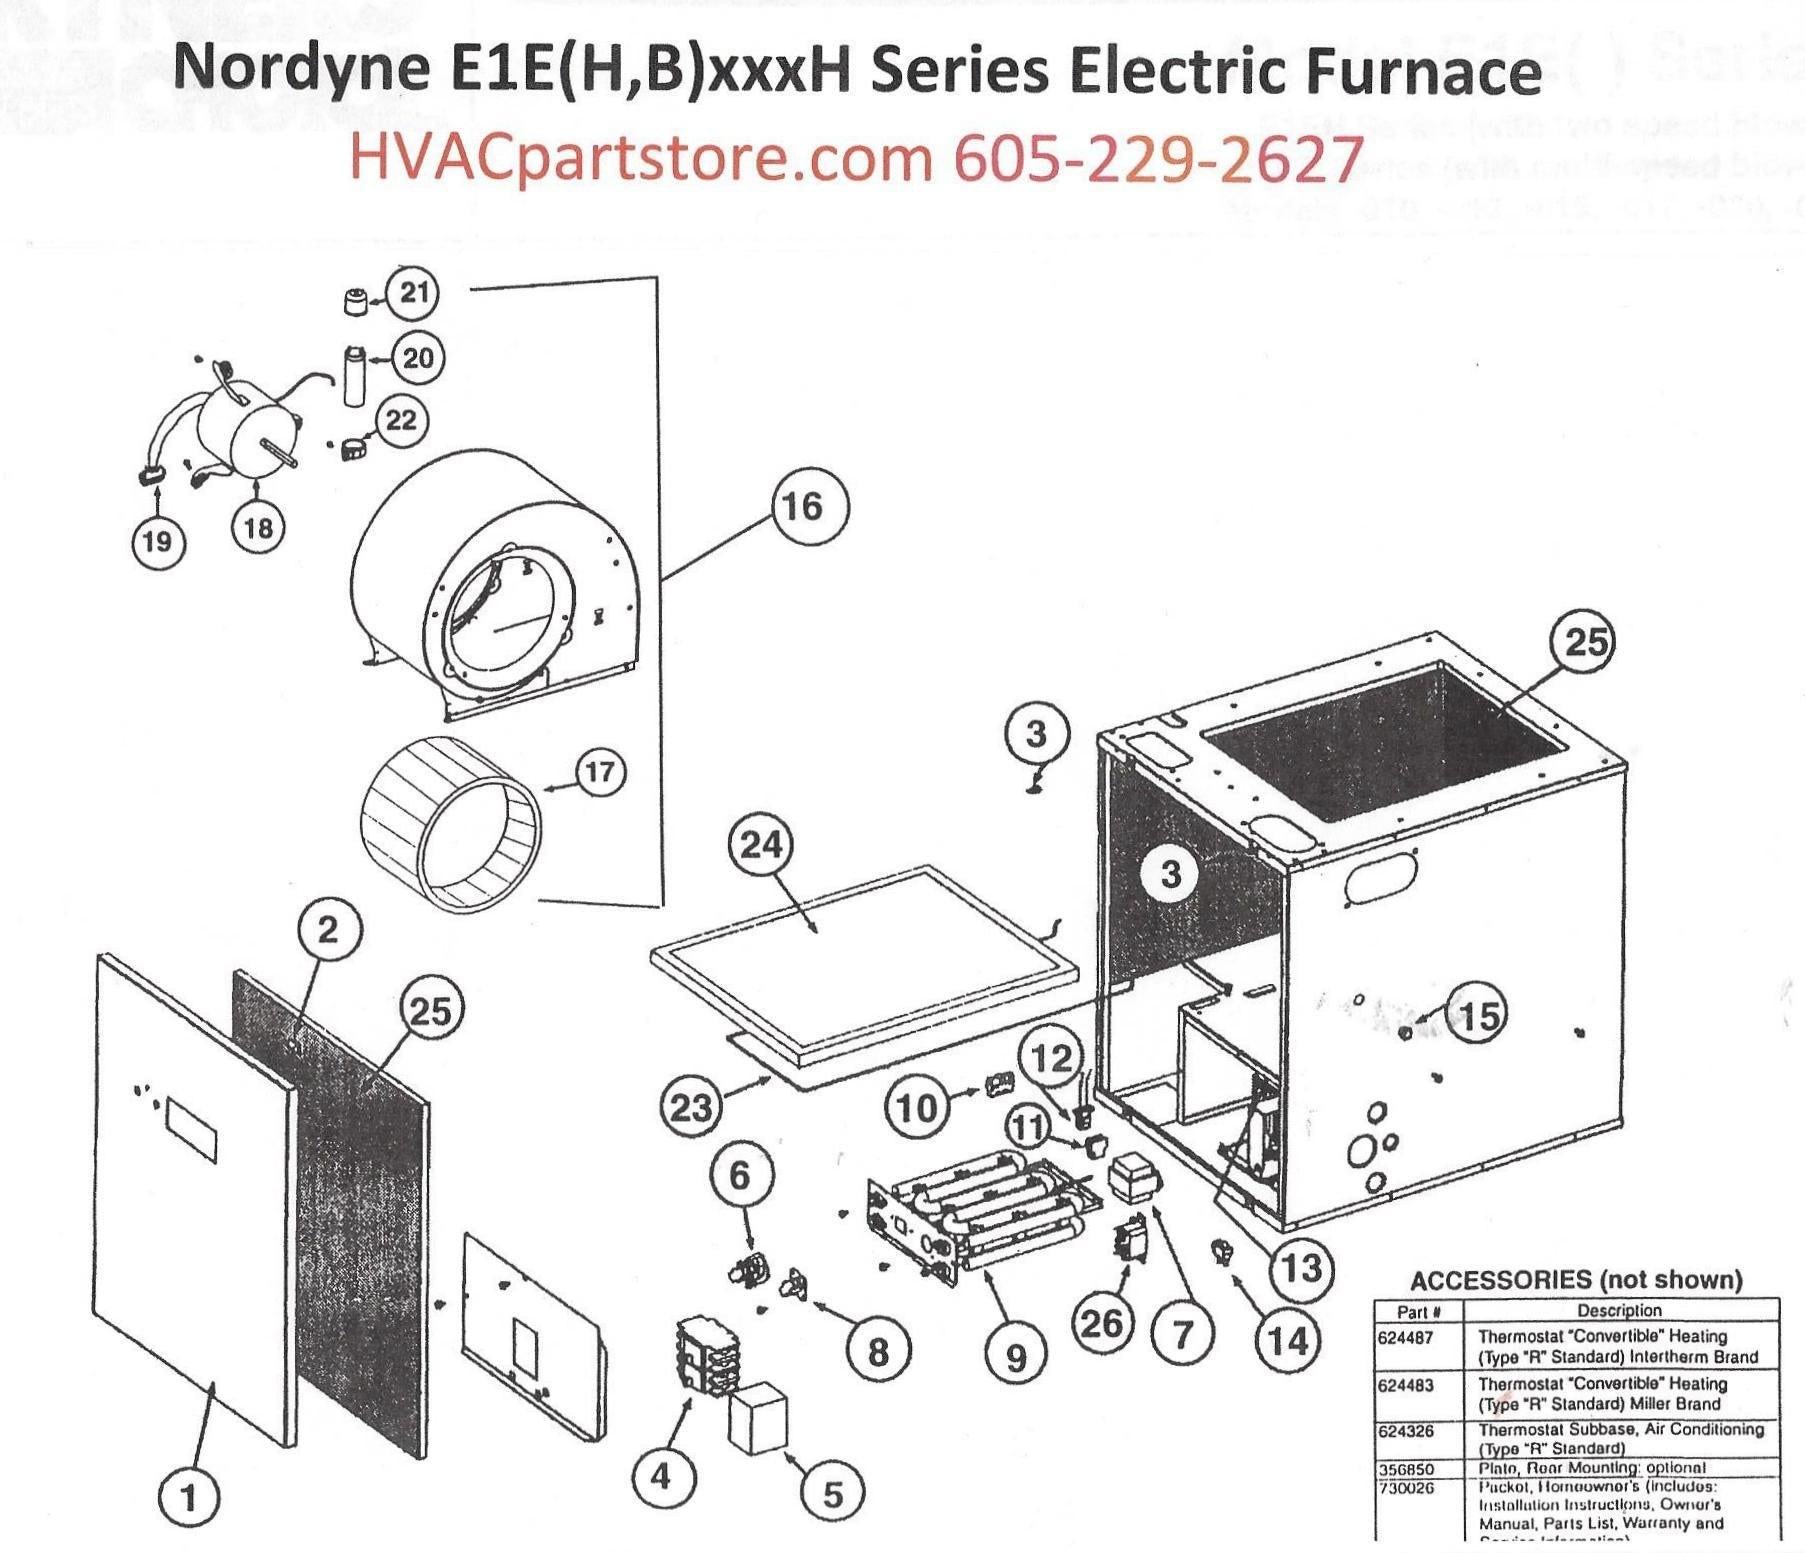 E1eh015h Nordyne Electric Furnace Parts  U2013 Hvacpartstore